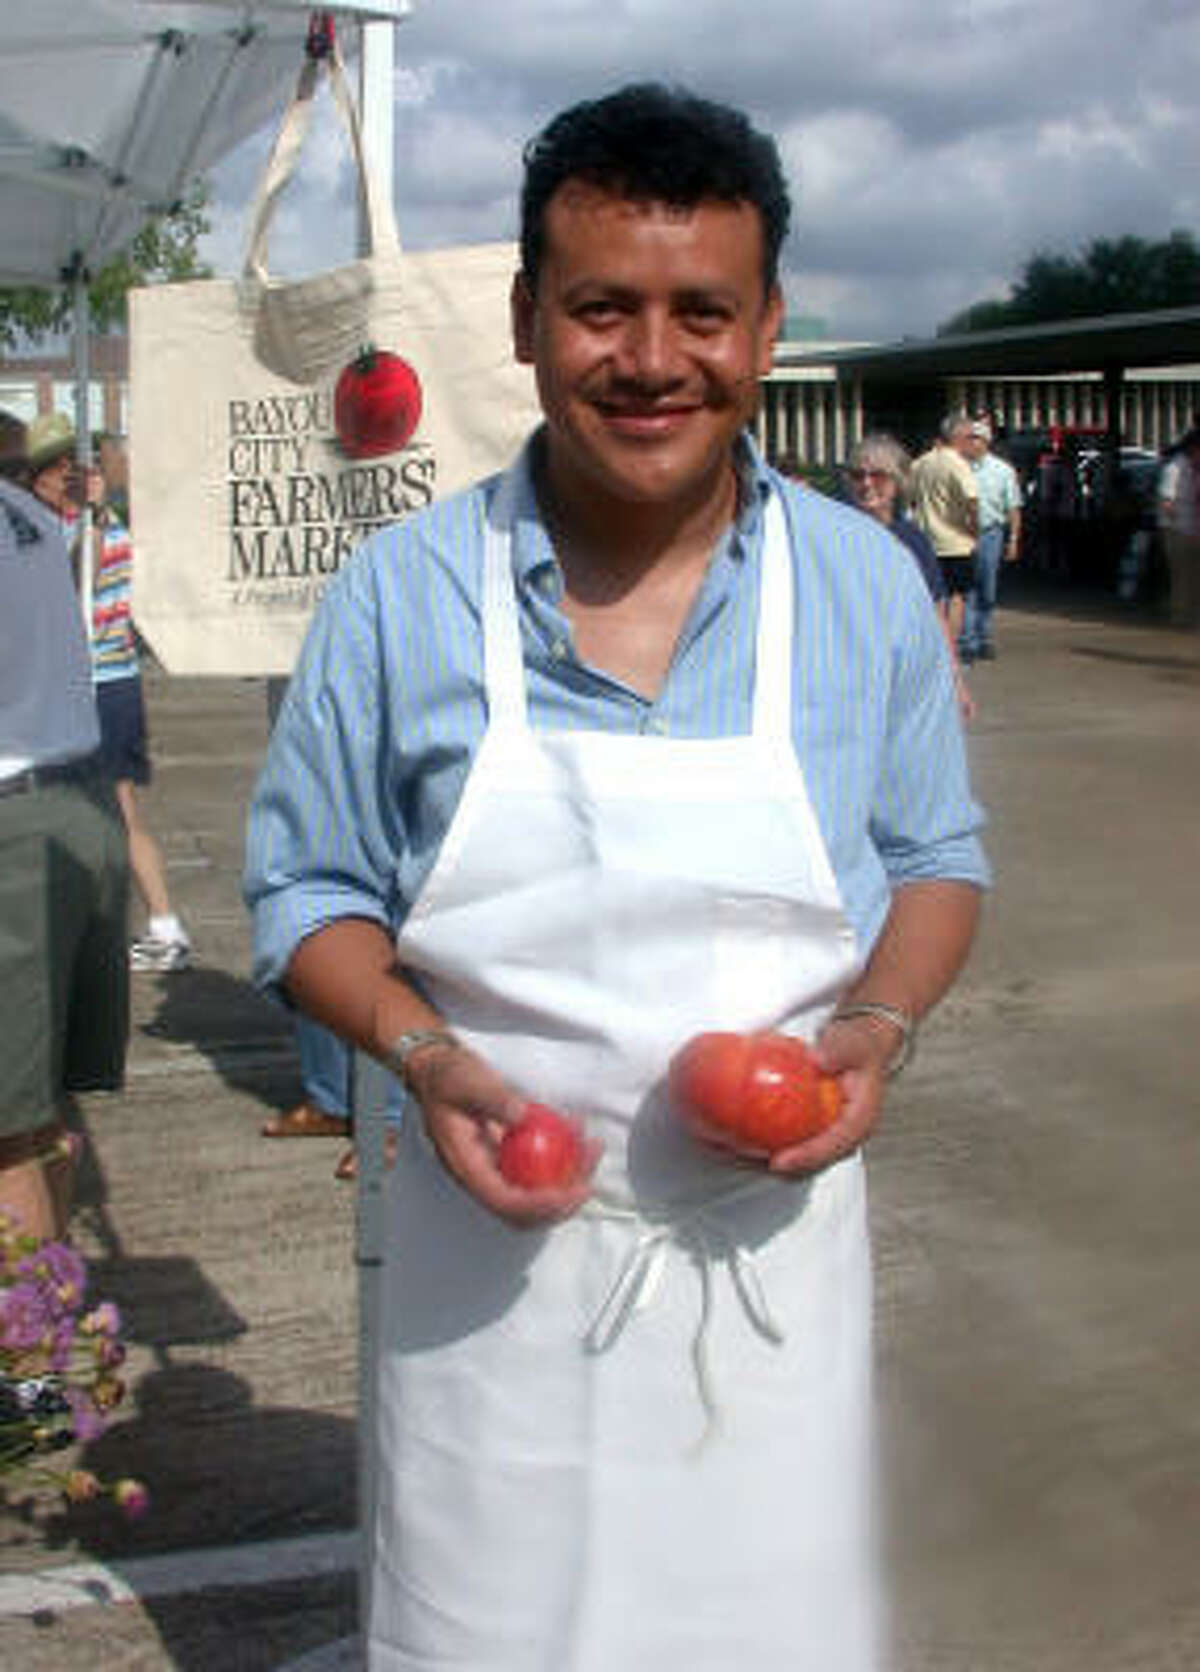 Hugo Ortega, the executive chef of Backstreet Cafe and Hugo's, will be cooking up his favorite tomato-themed recipe at the Bayou City Farmers' Market Tomato Fest on June 6.